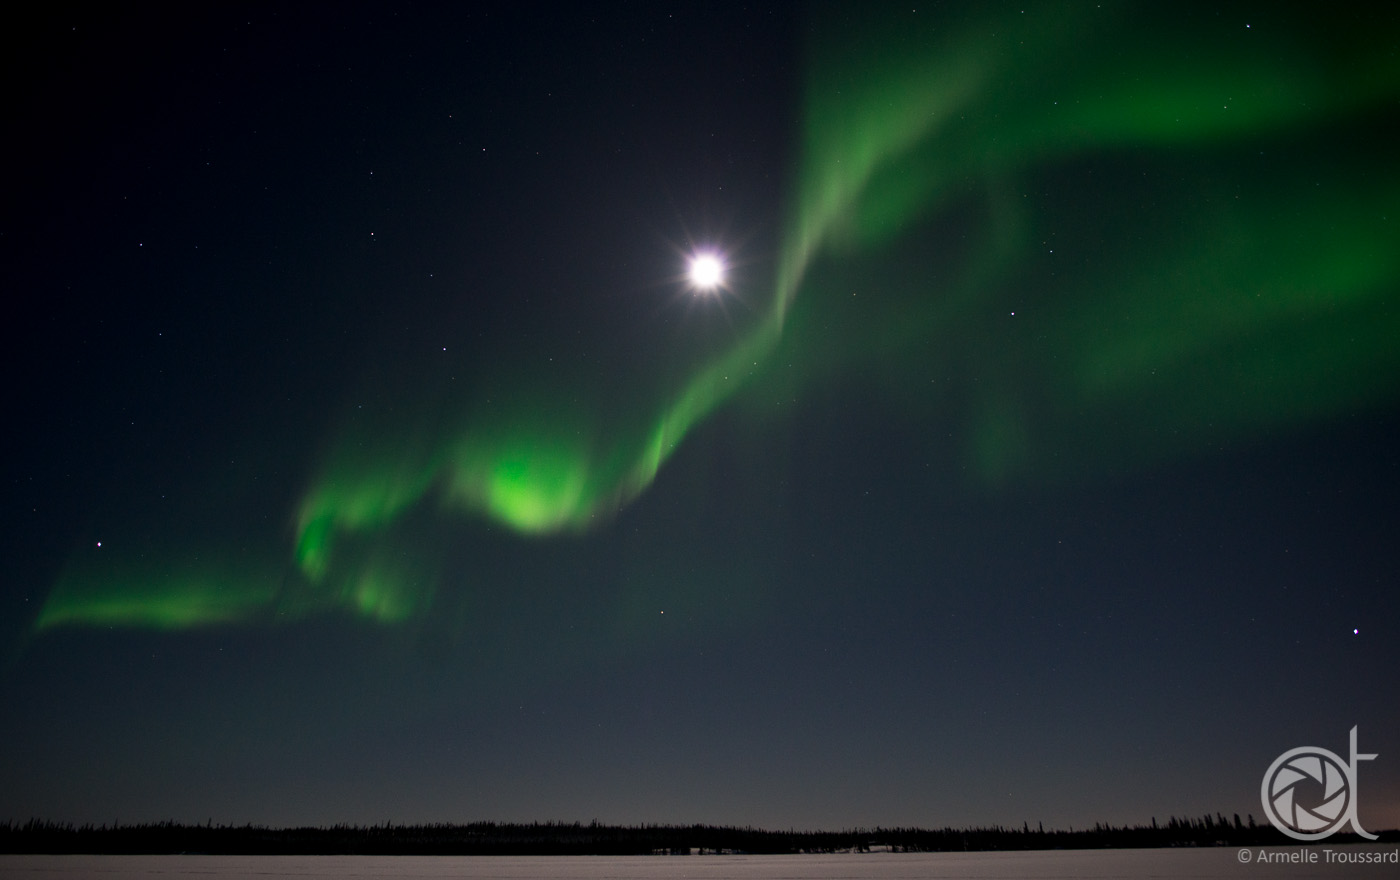 Northern lights - Walsh lake, Northwest Territories, Canada.